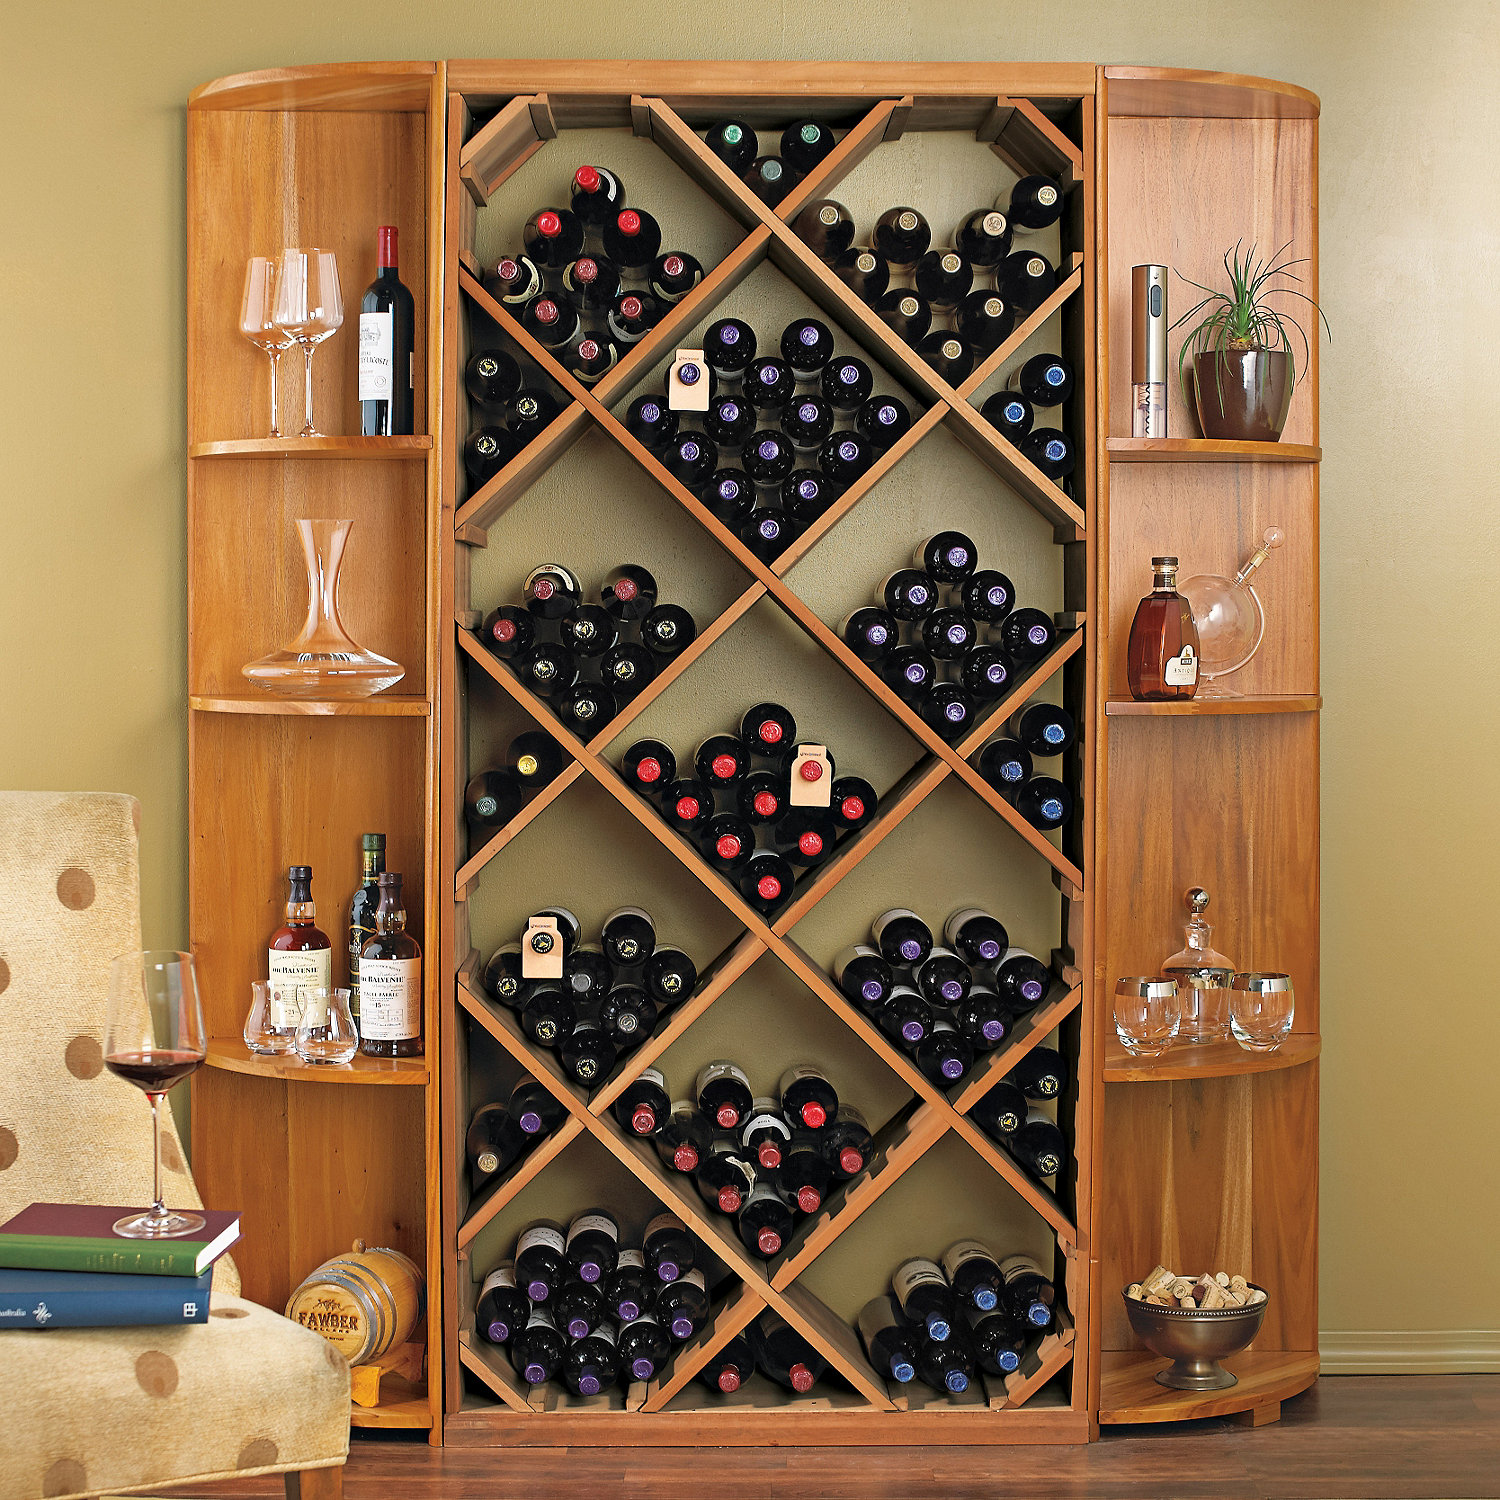 ready file top bottle cranville business wine assembled racks cupboard image classic wood with home and rack metal